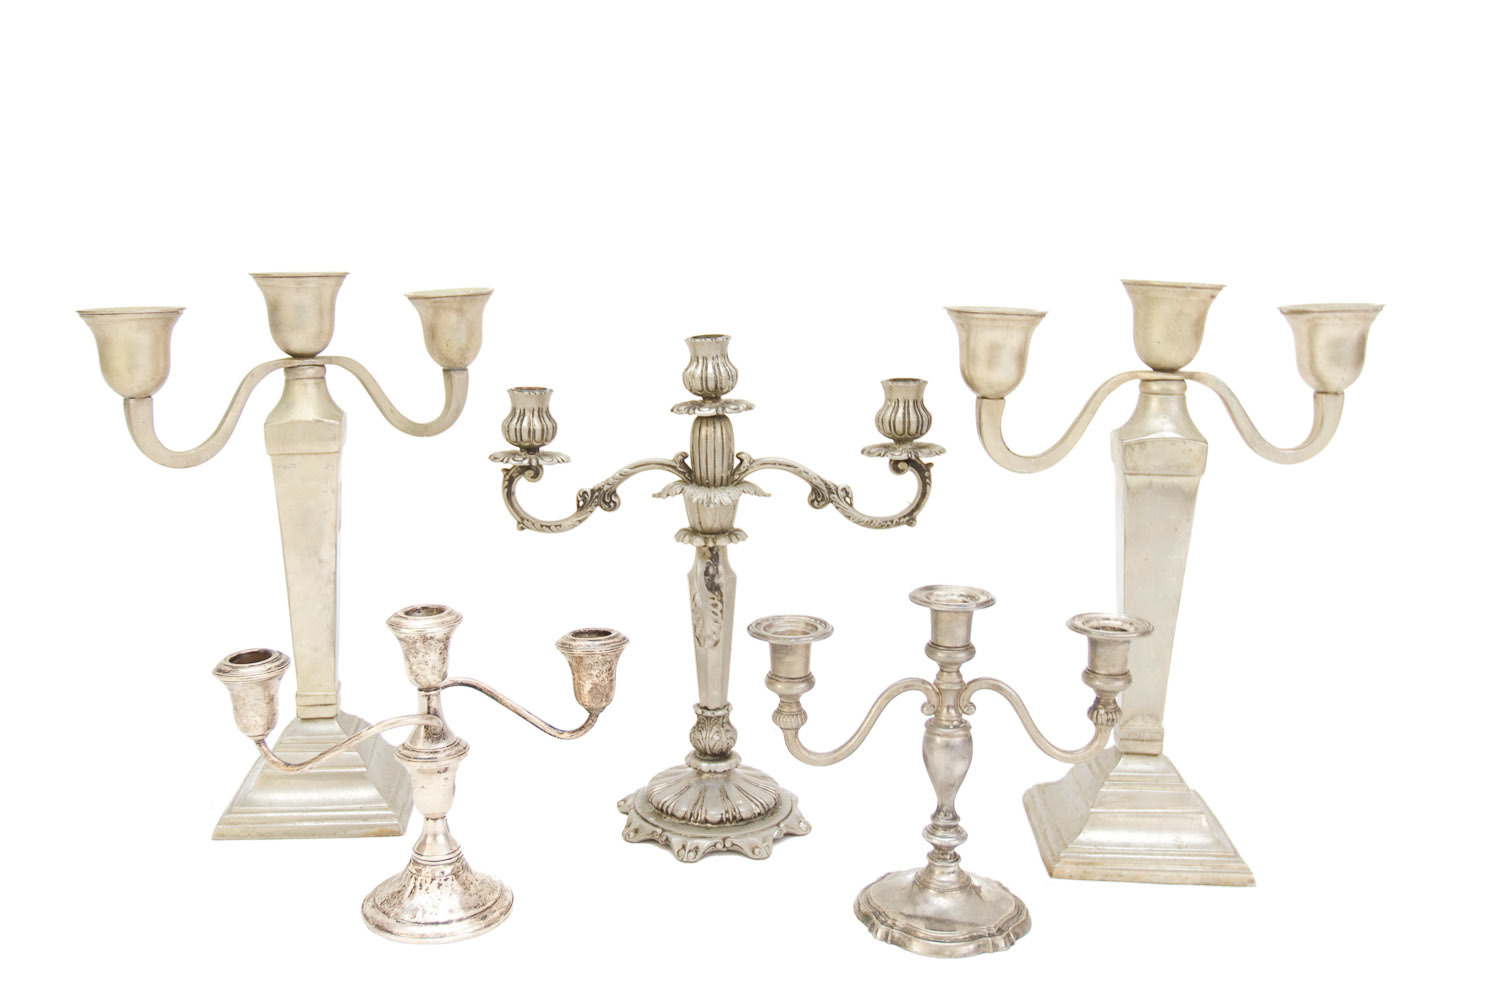 (TA-079.2) SILVER + PEWTER CANDELABRA COLLECTION